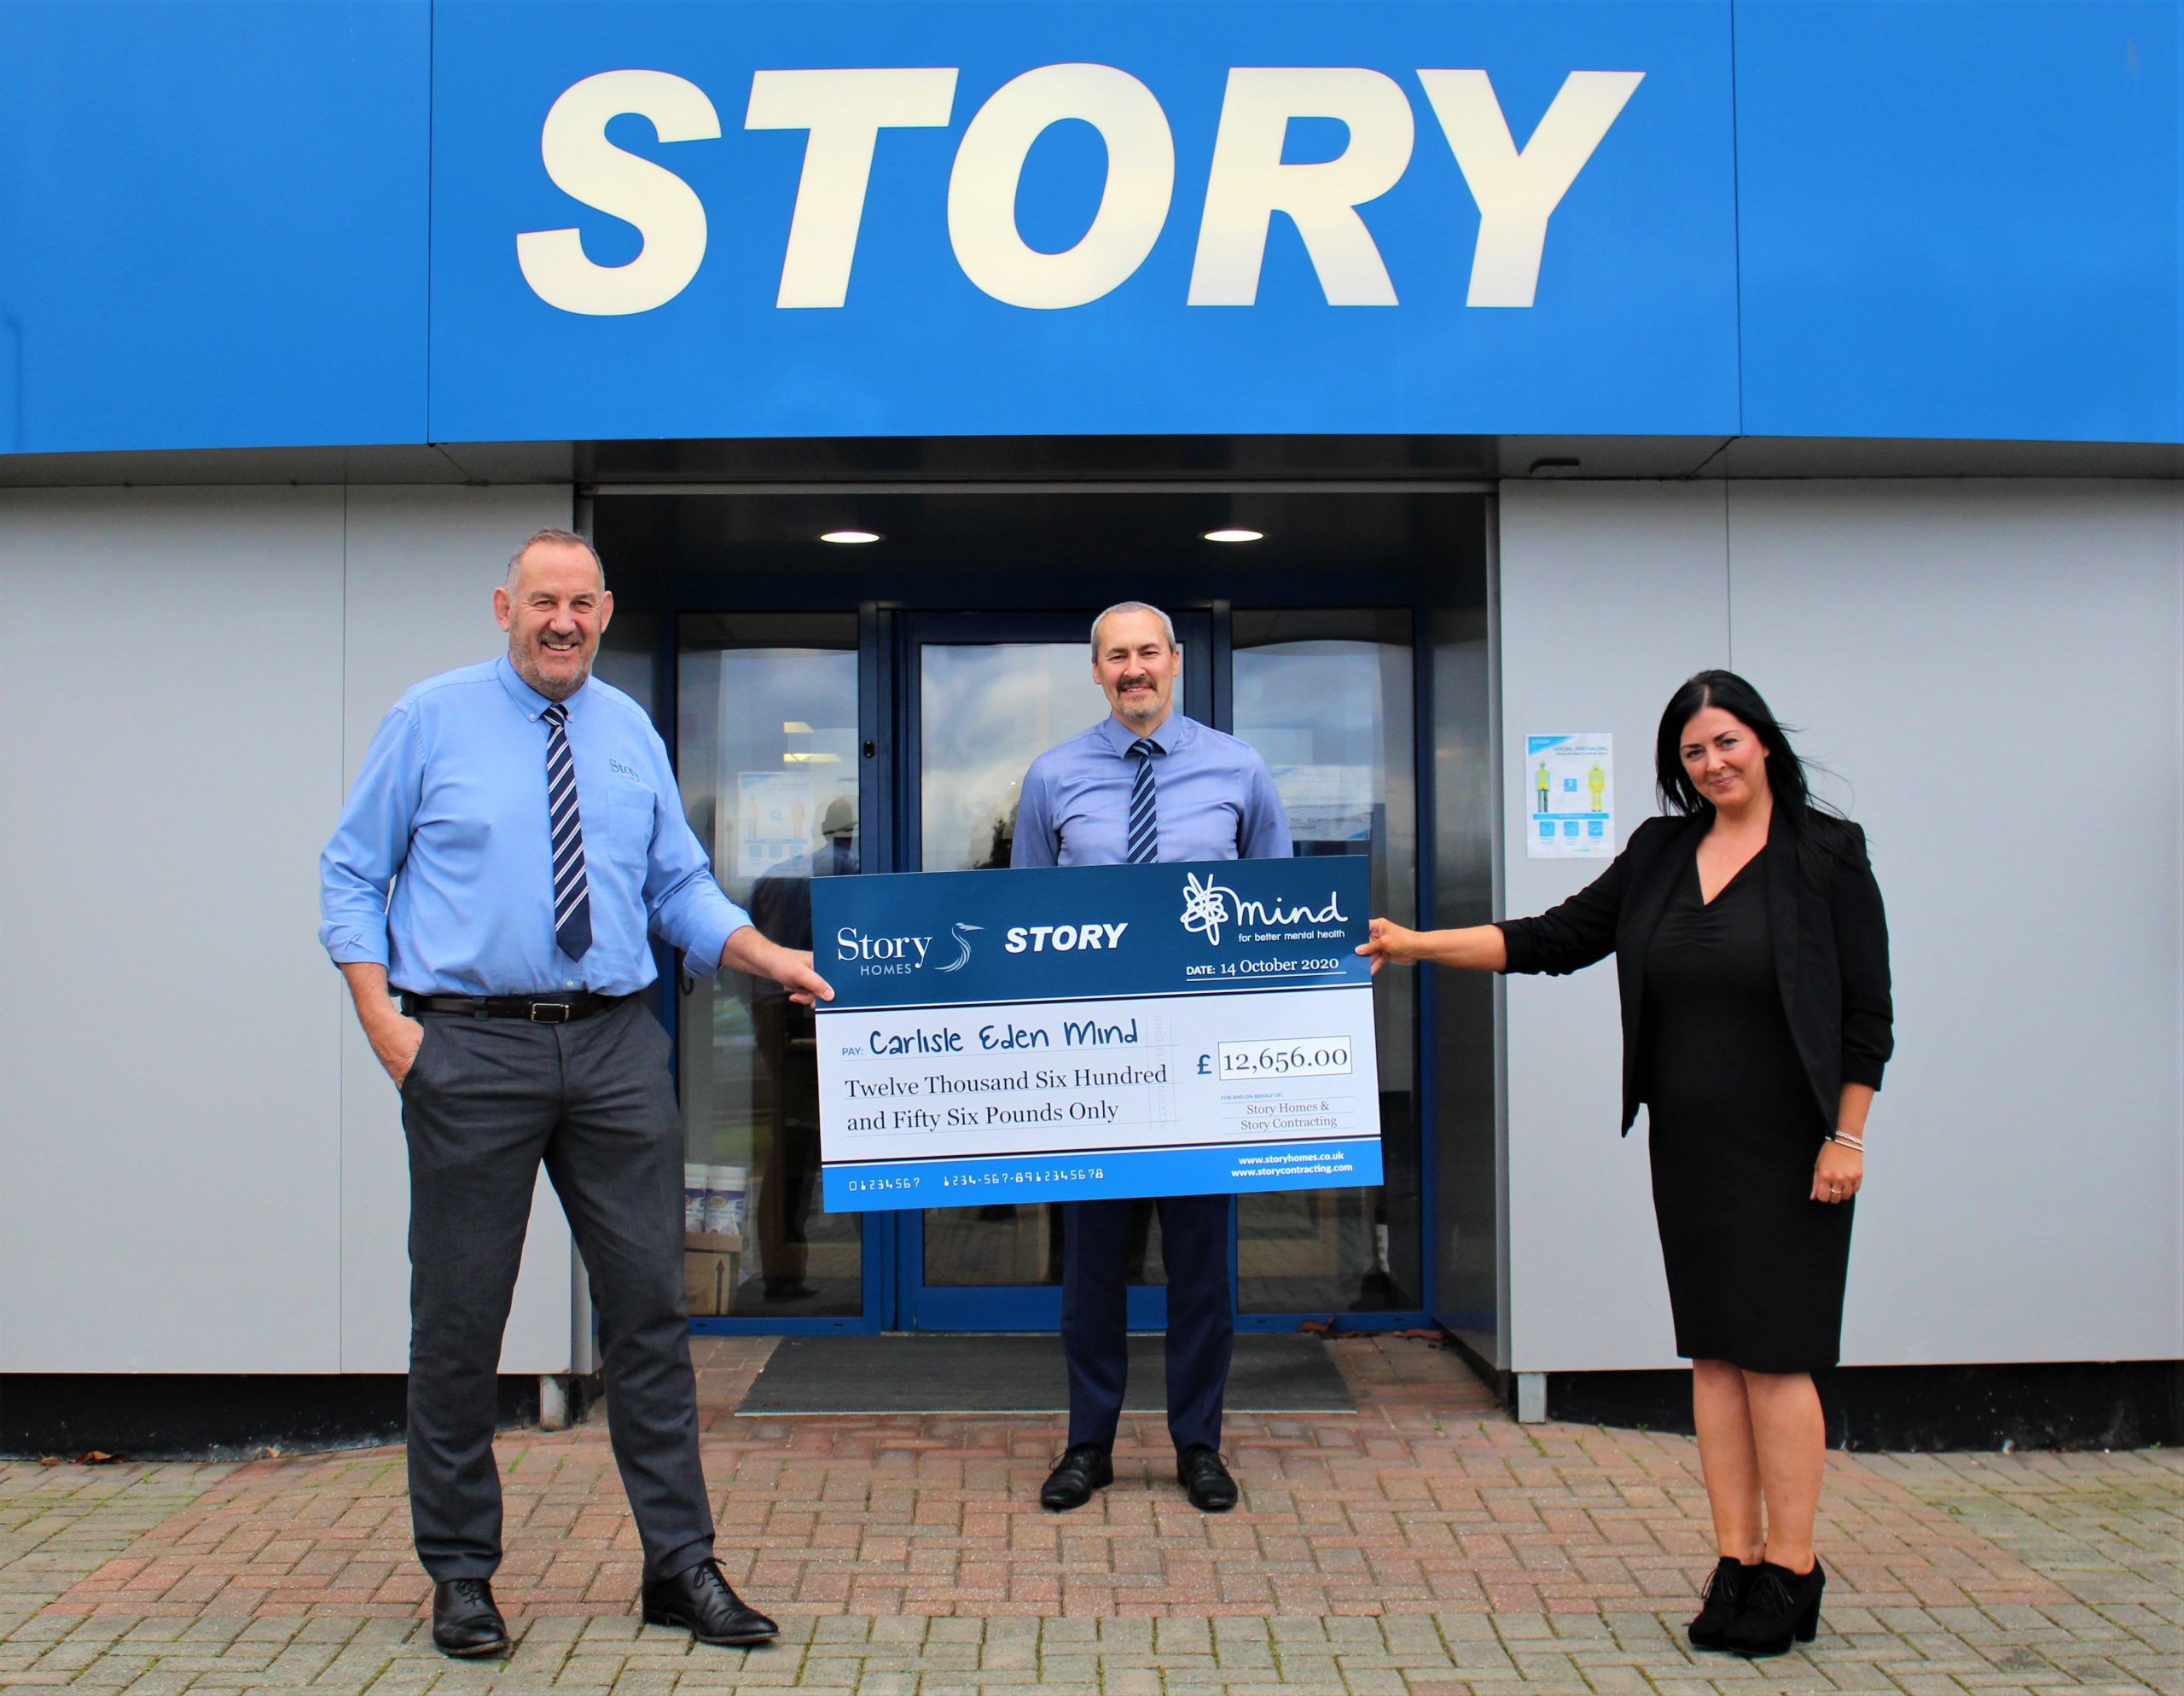 STORY HOMES AND STORY CONTRACTING DONATE OVER £28,000 TO MENTAL HEALTH CHARITY MIND